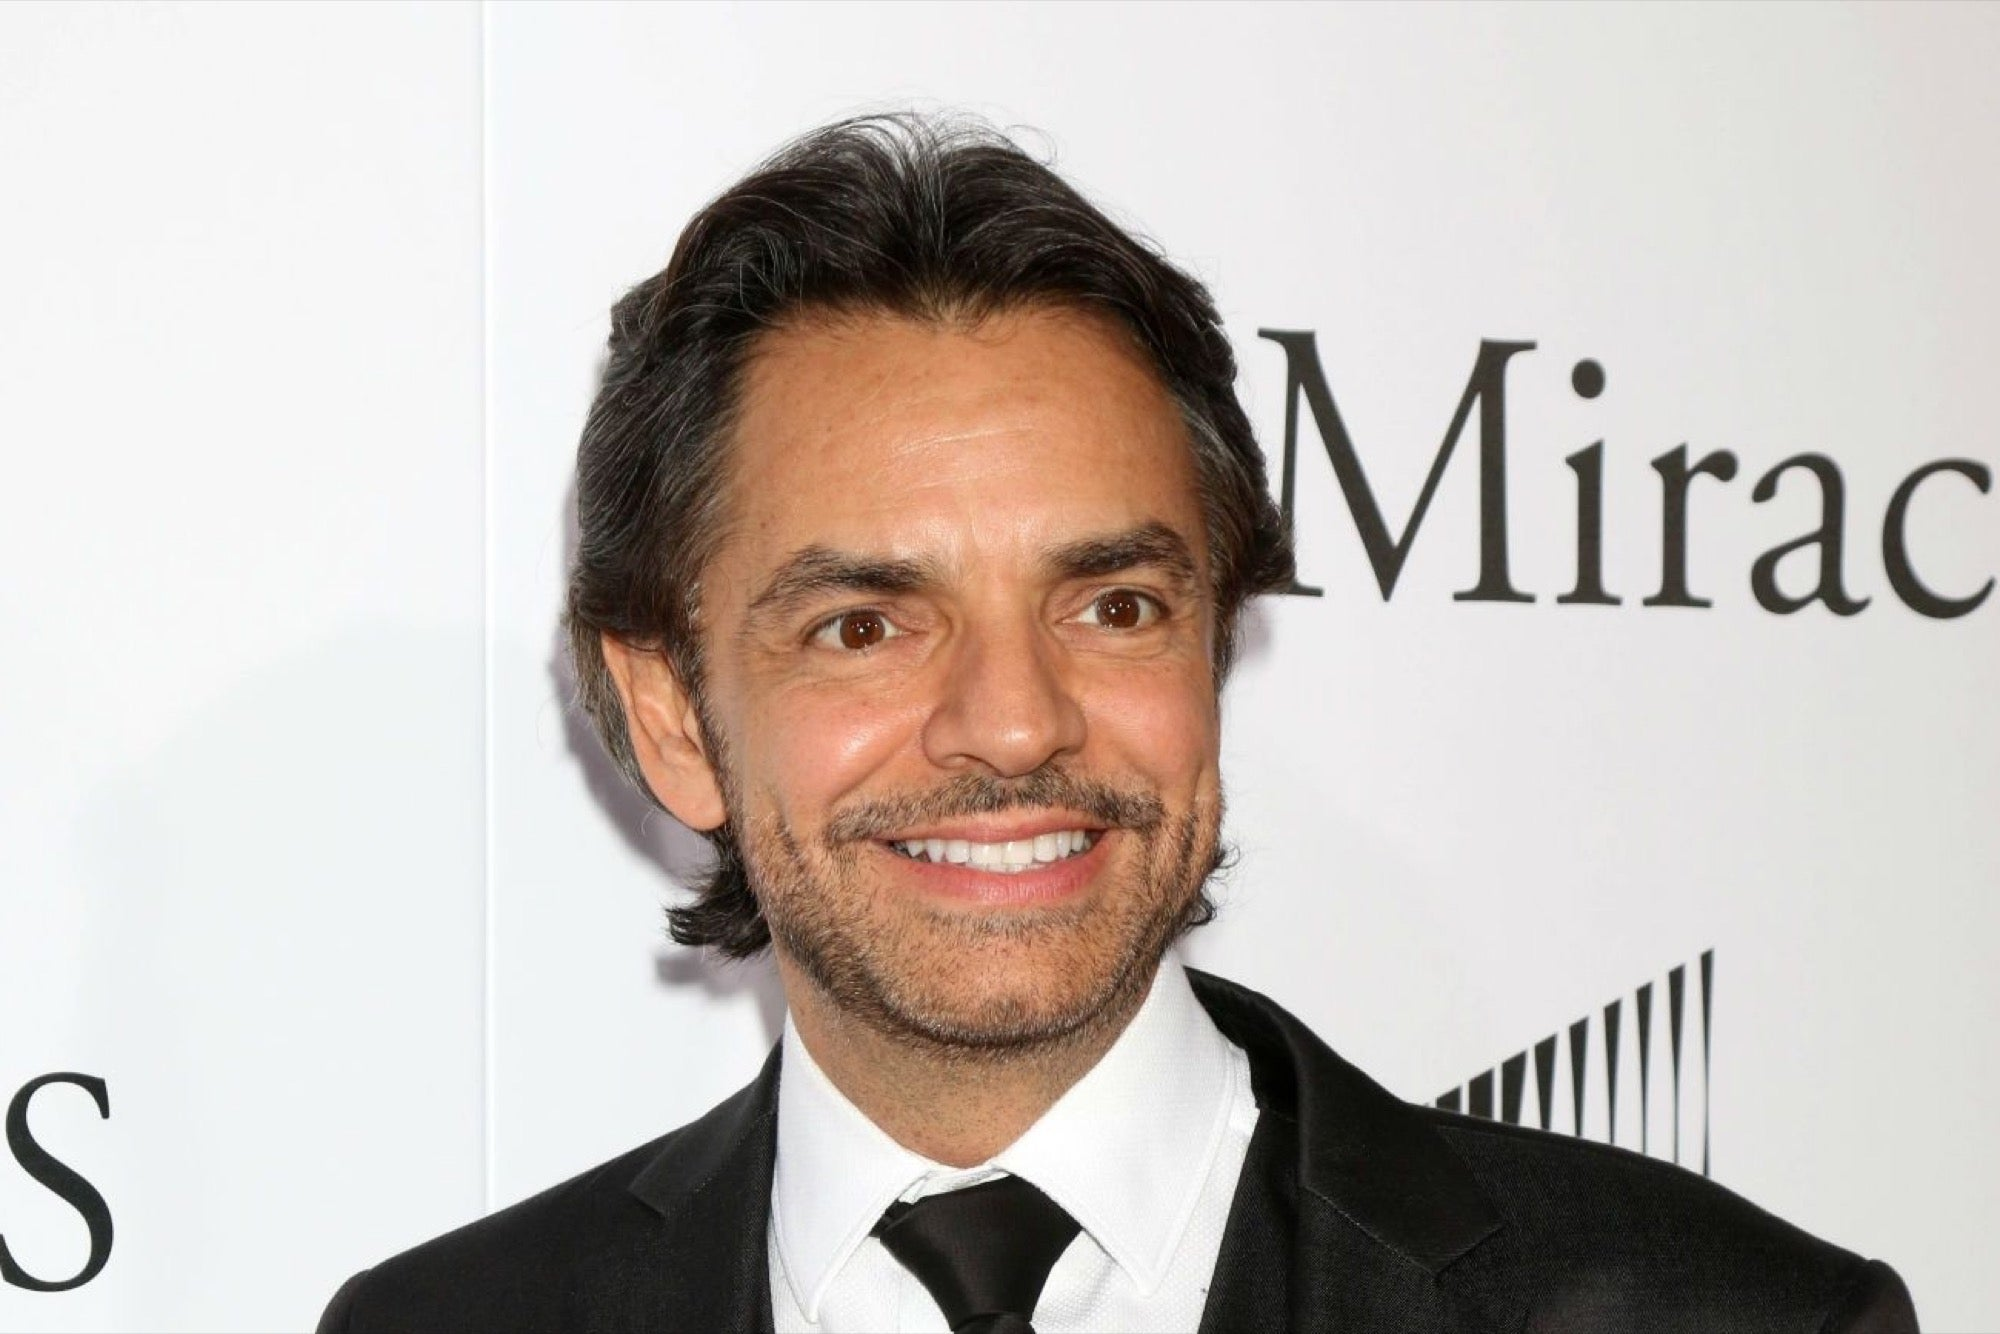 How tall is Eugenio Derbez?